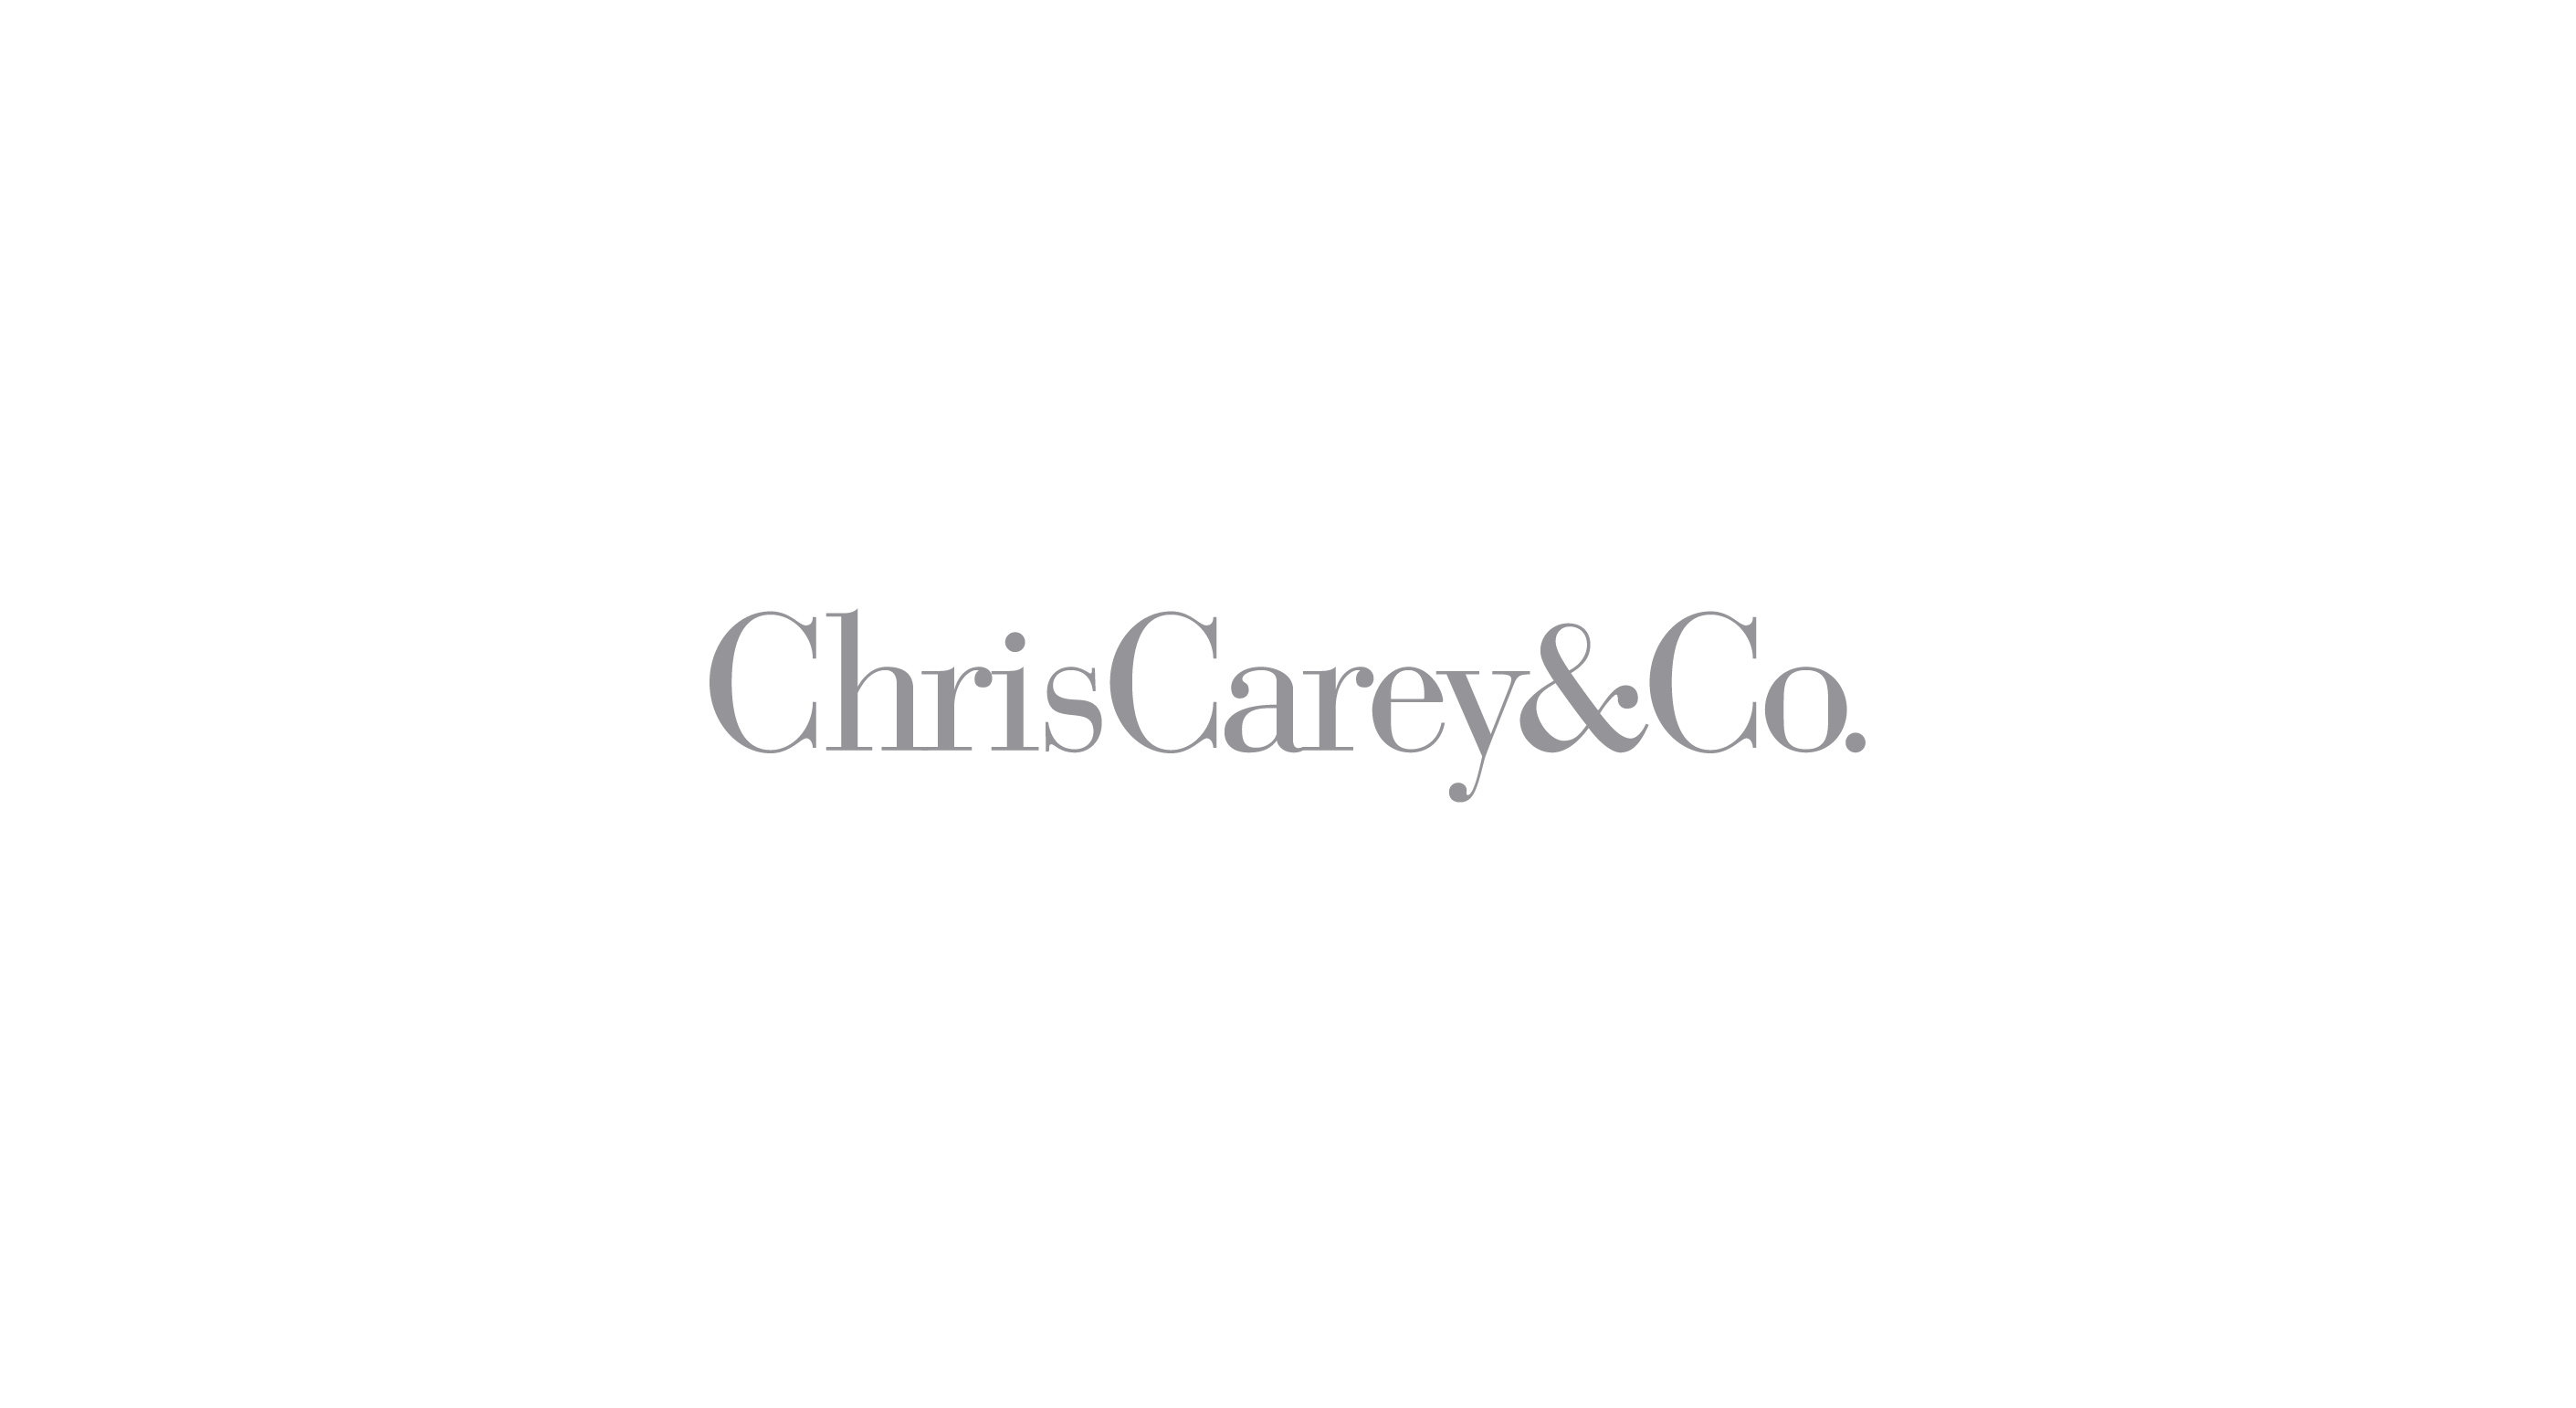 Chris Carey & Co.